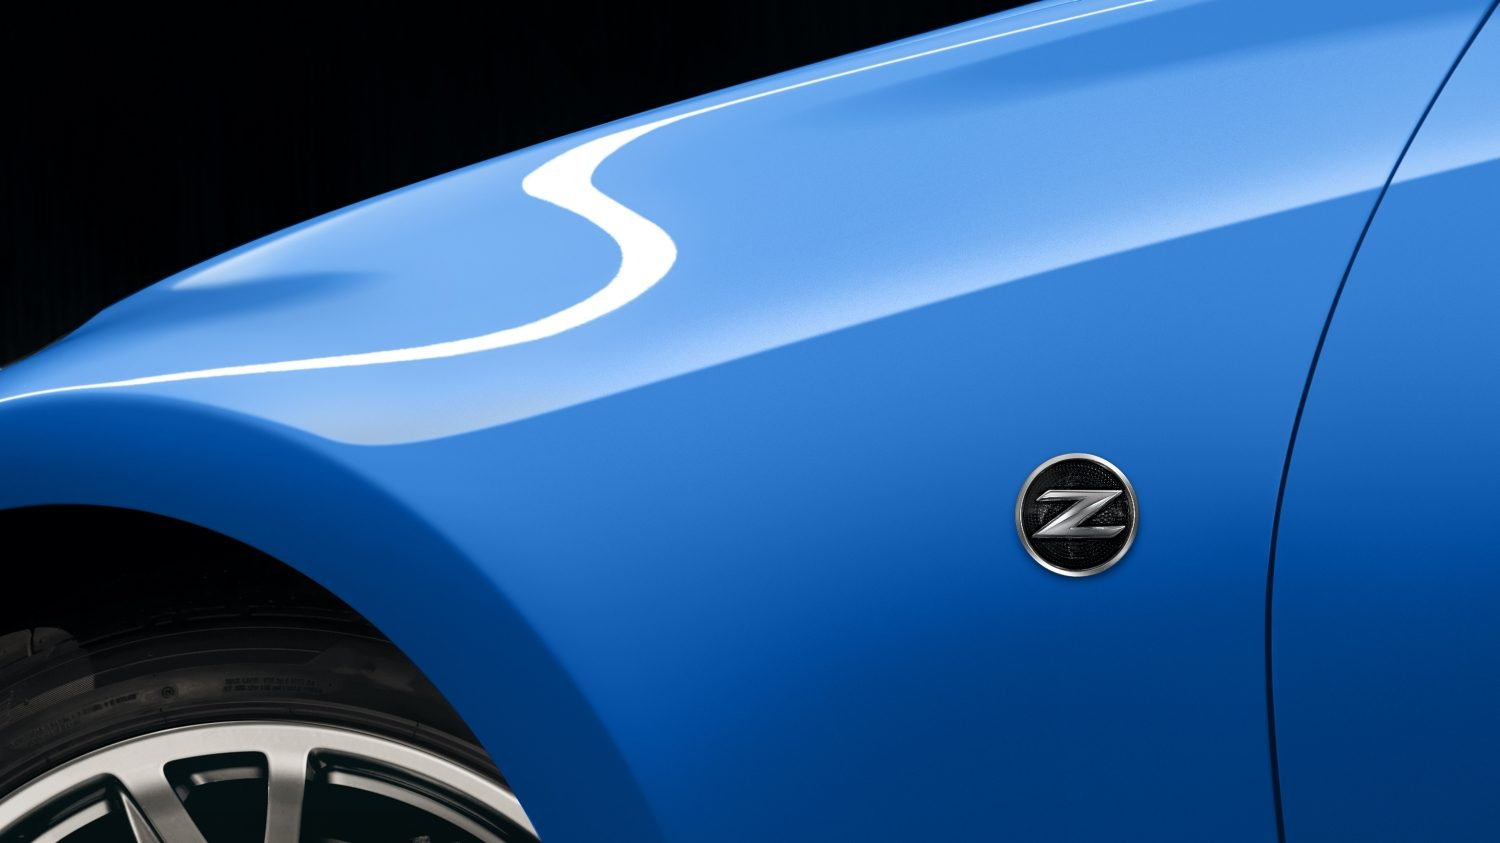 Front end of car with Z symbol